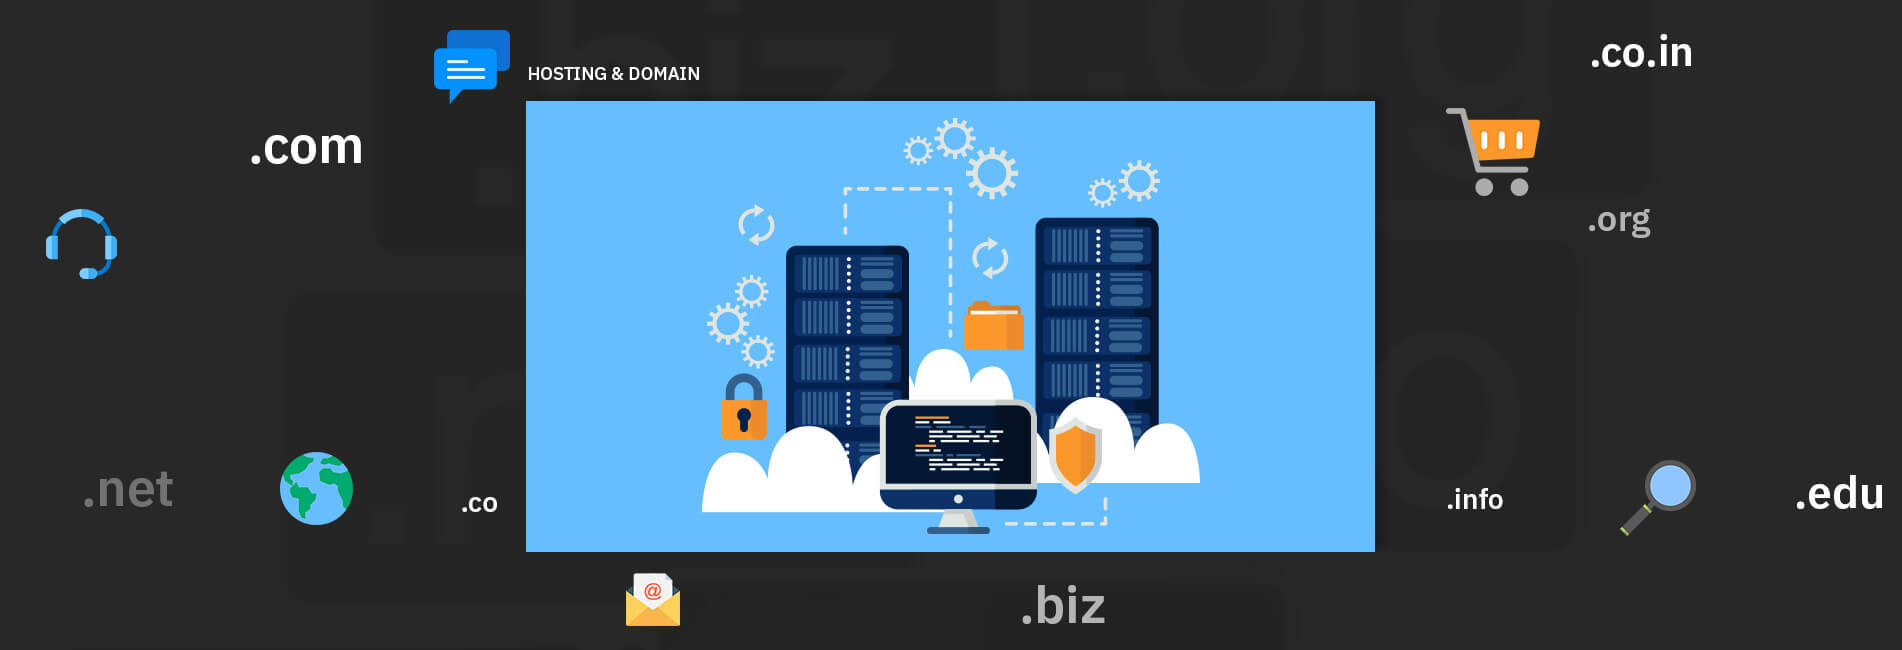 hosting and domain services